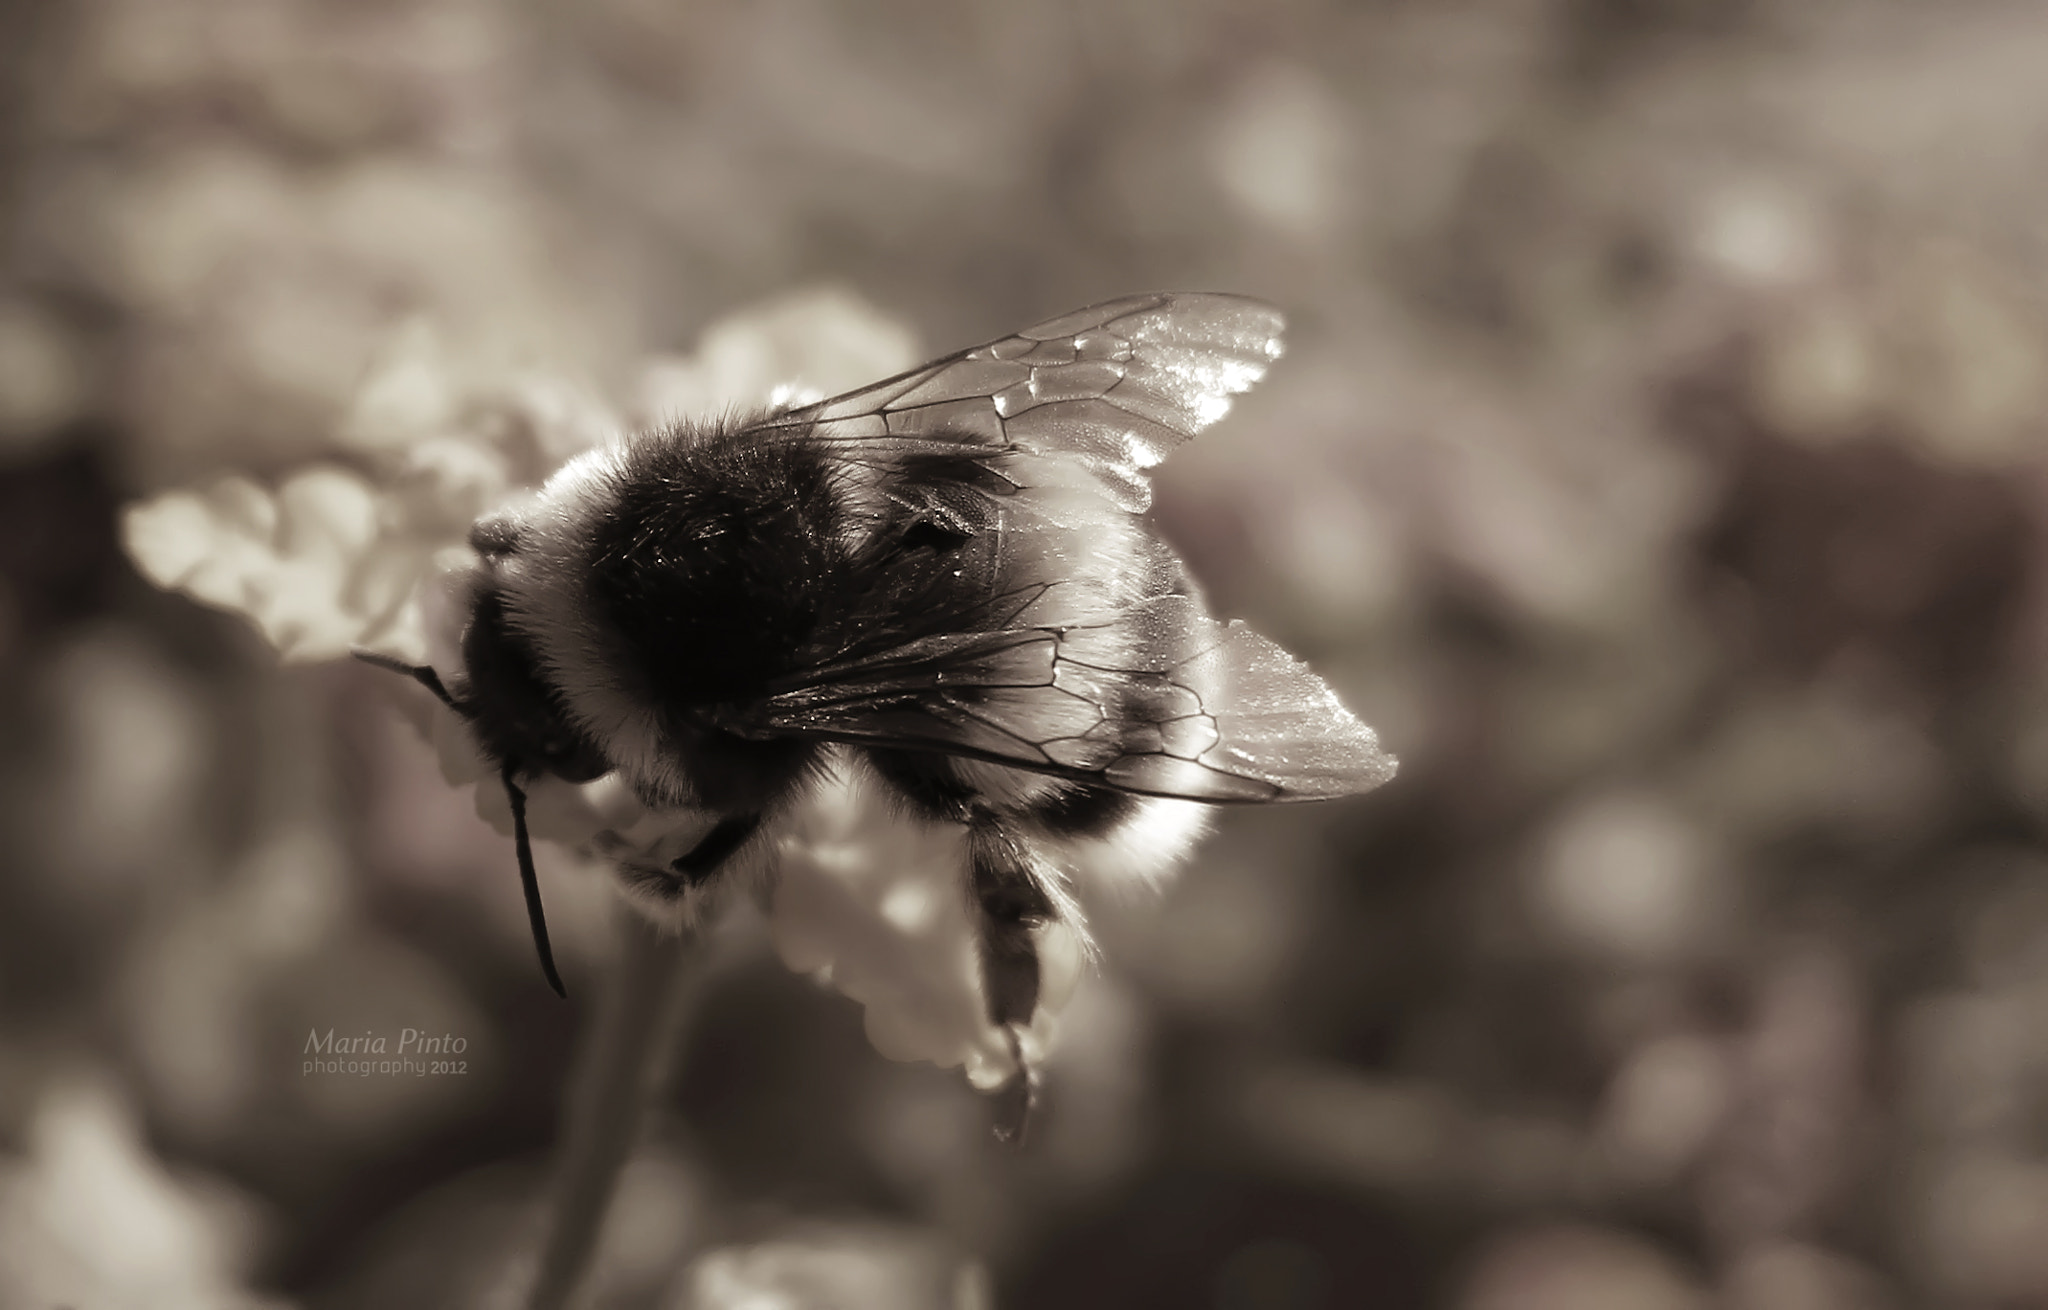 Photograph Bumblebee VI by Maria Pinto on 500px